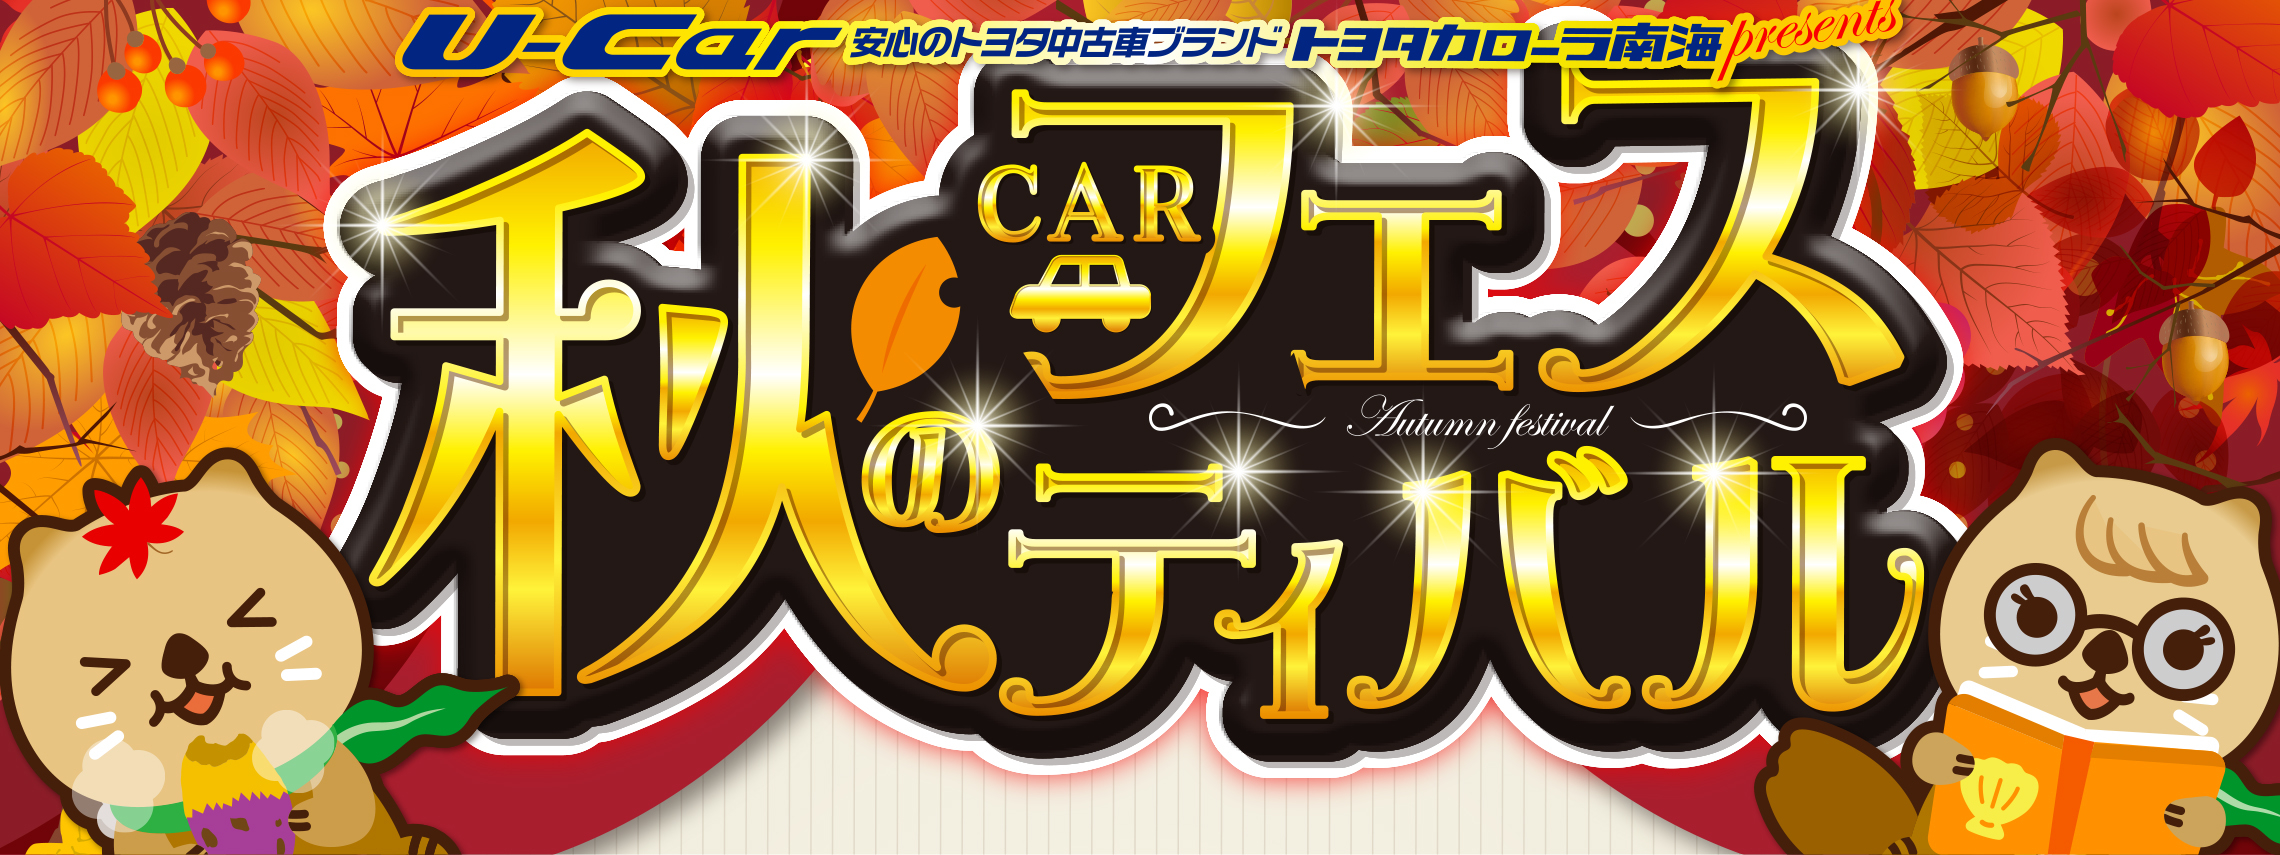 2009_U-car_DMS PC用画像_2280px×855px (1)